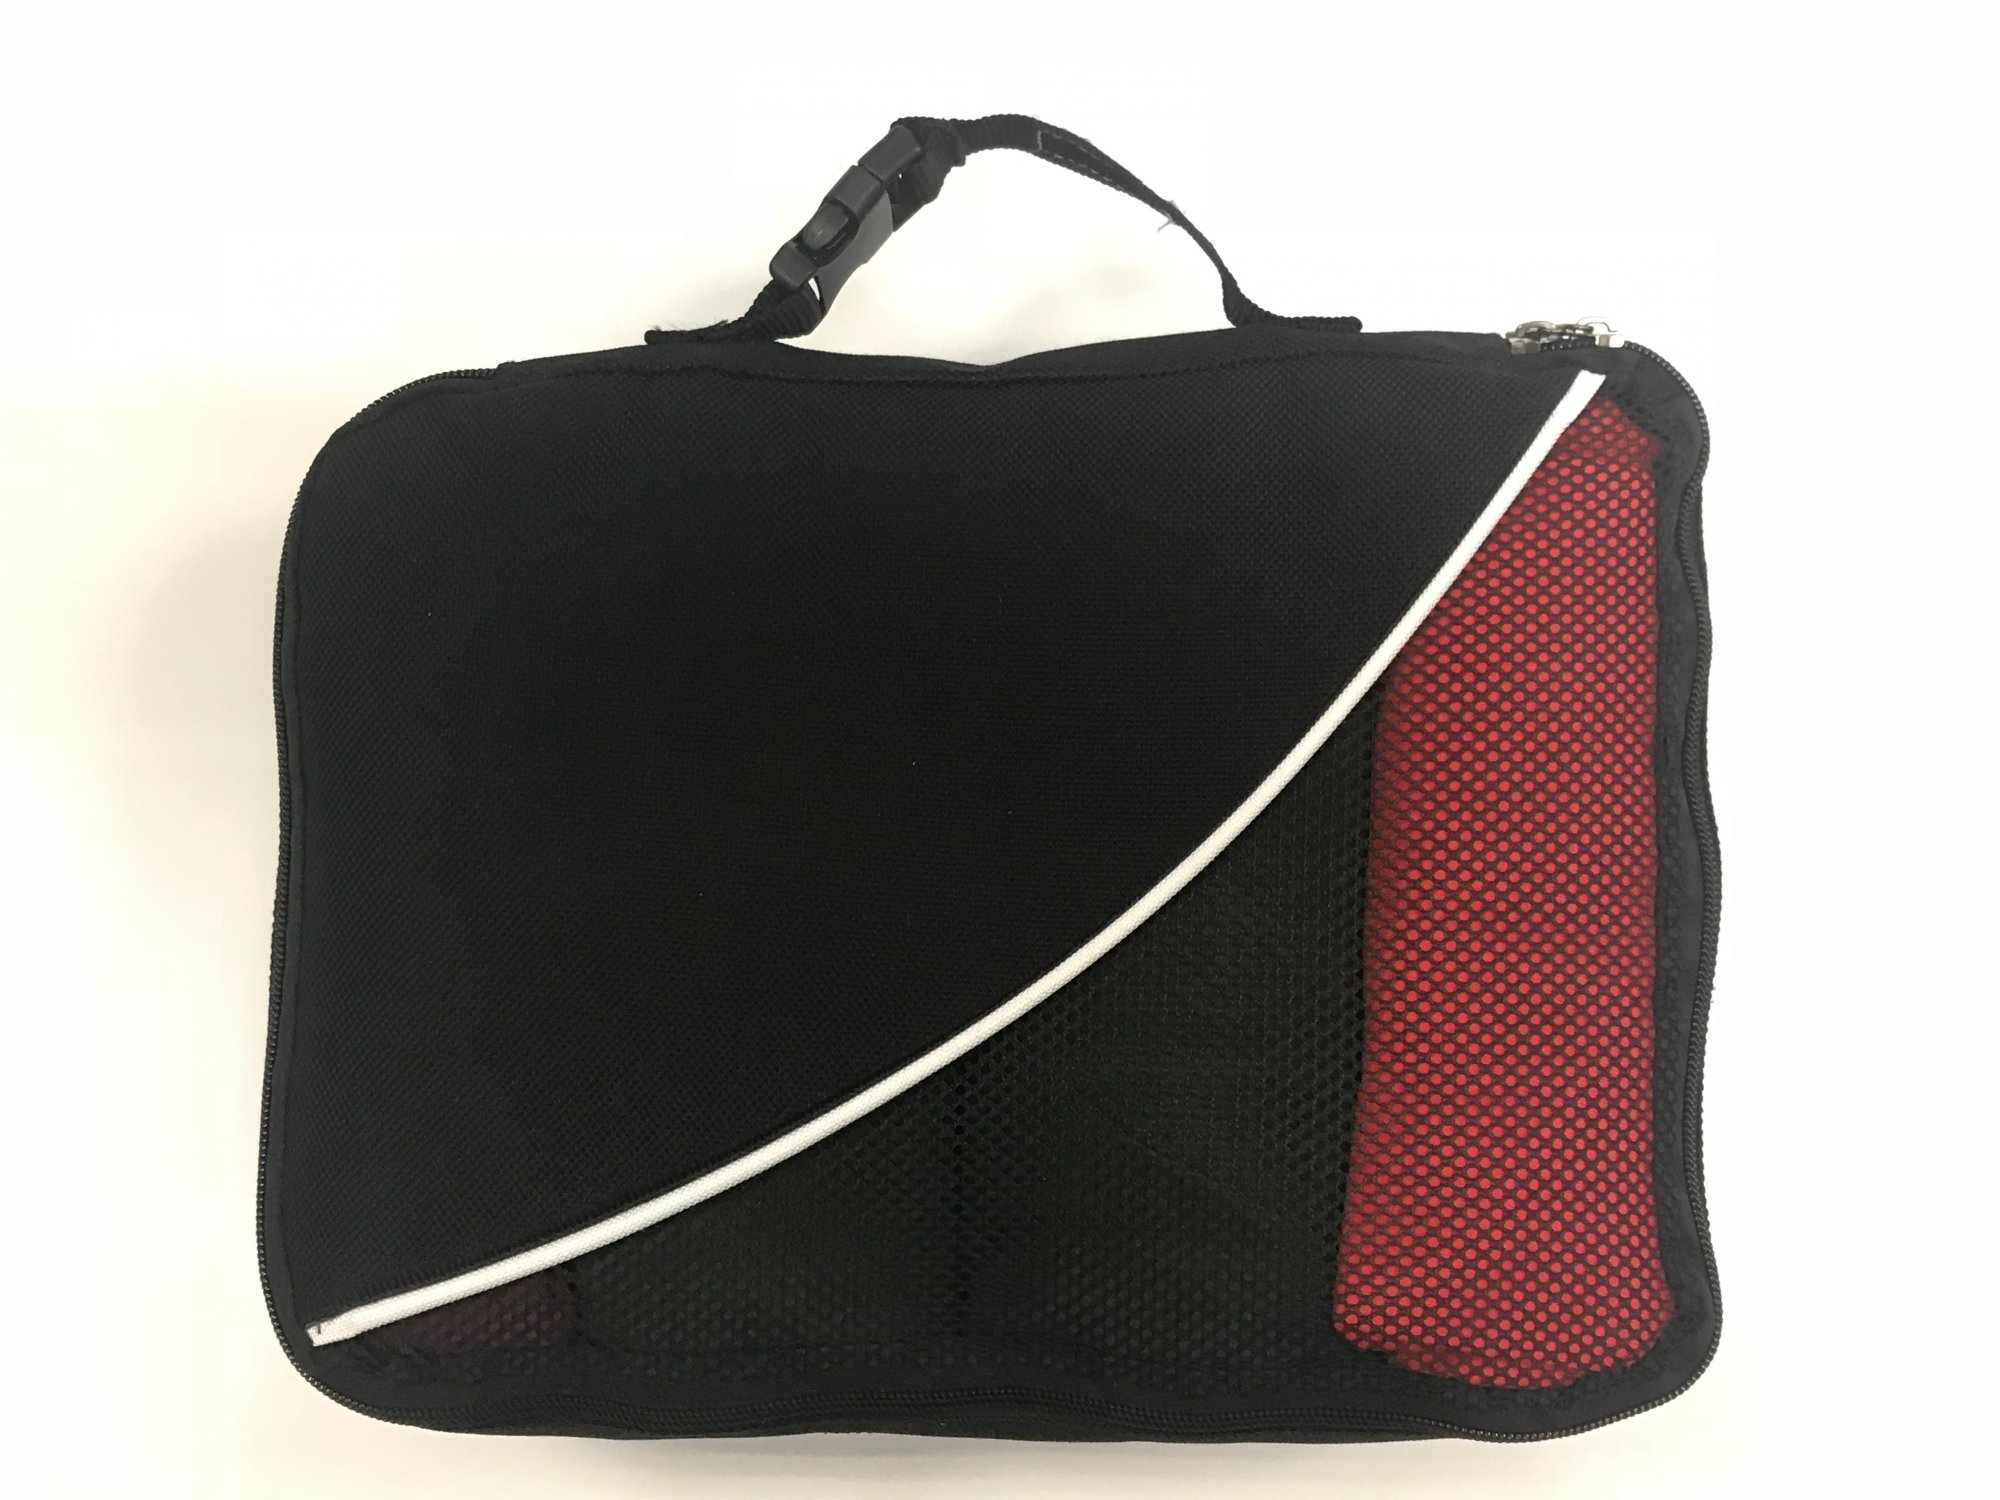 4 Four Packing Cubes Double Sided Mesh & includes 1 solid sided cube